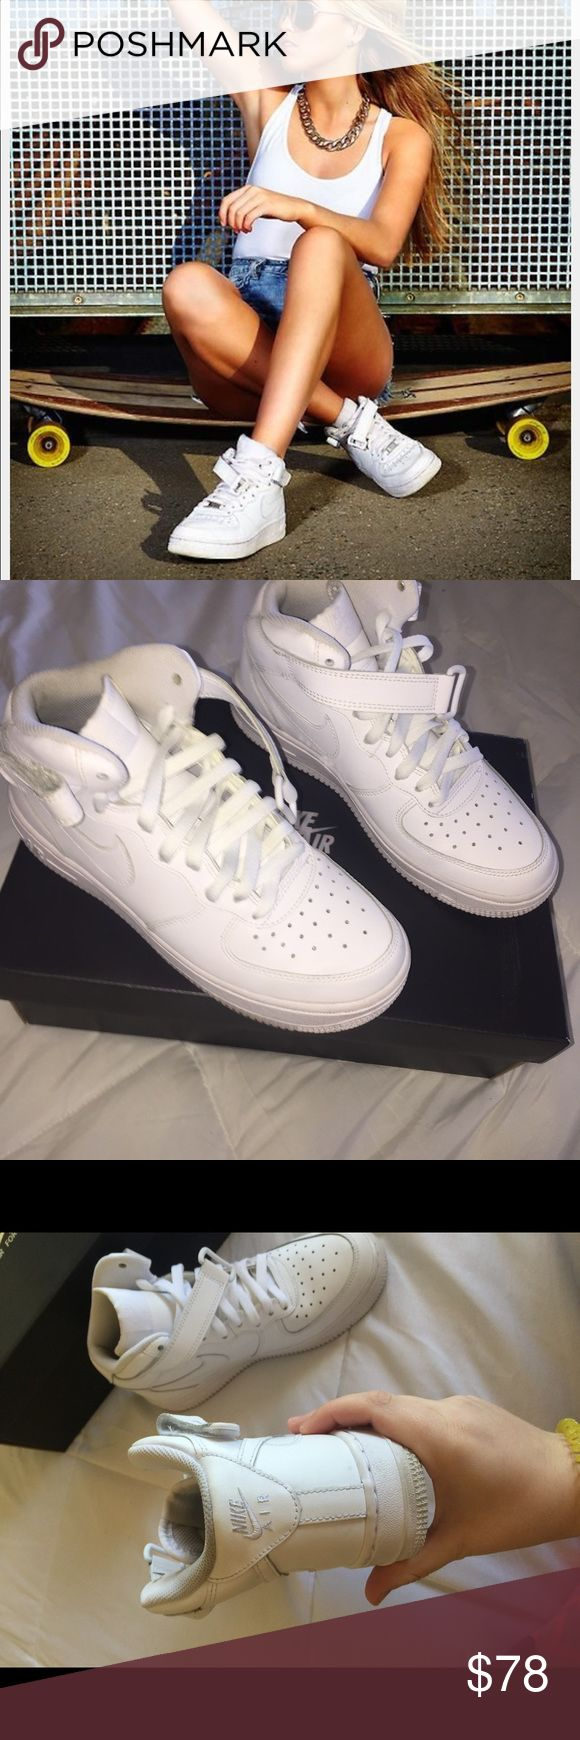 Nike Air Force One Mid Like new Air Force one mids. Worn very few times still super white!!! They're youth size 5.5, but will fit women's 7.5 or 8. Nike Shoes Sneakers